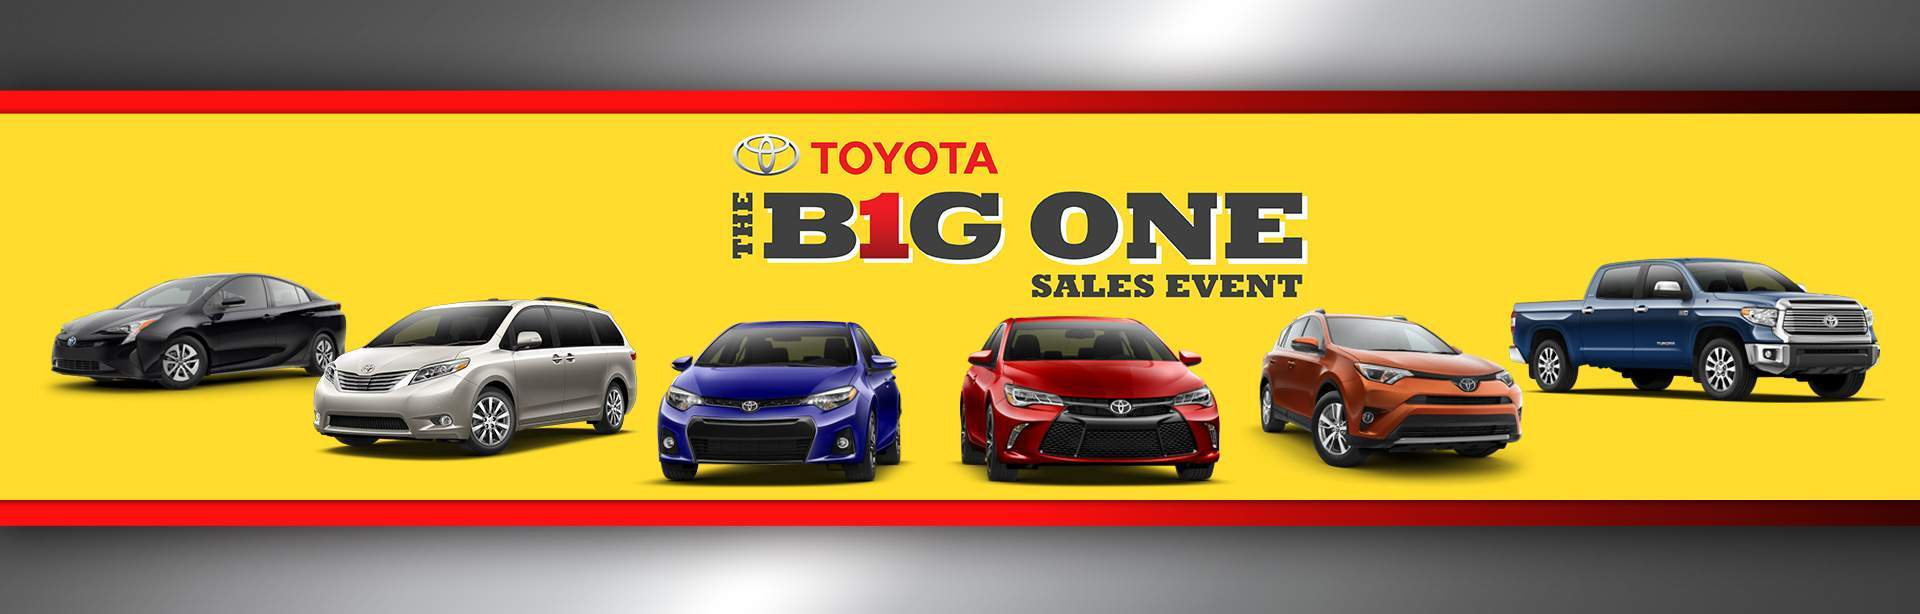 B1G One Sales Event